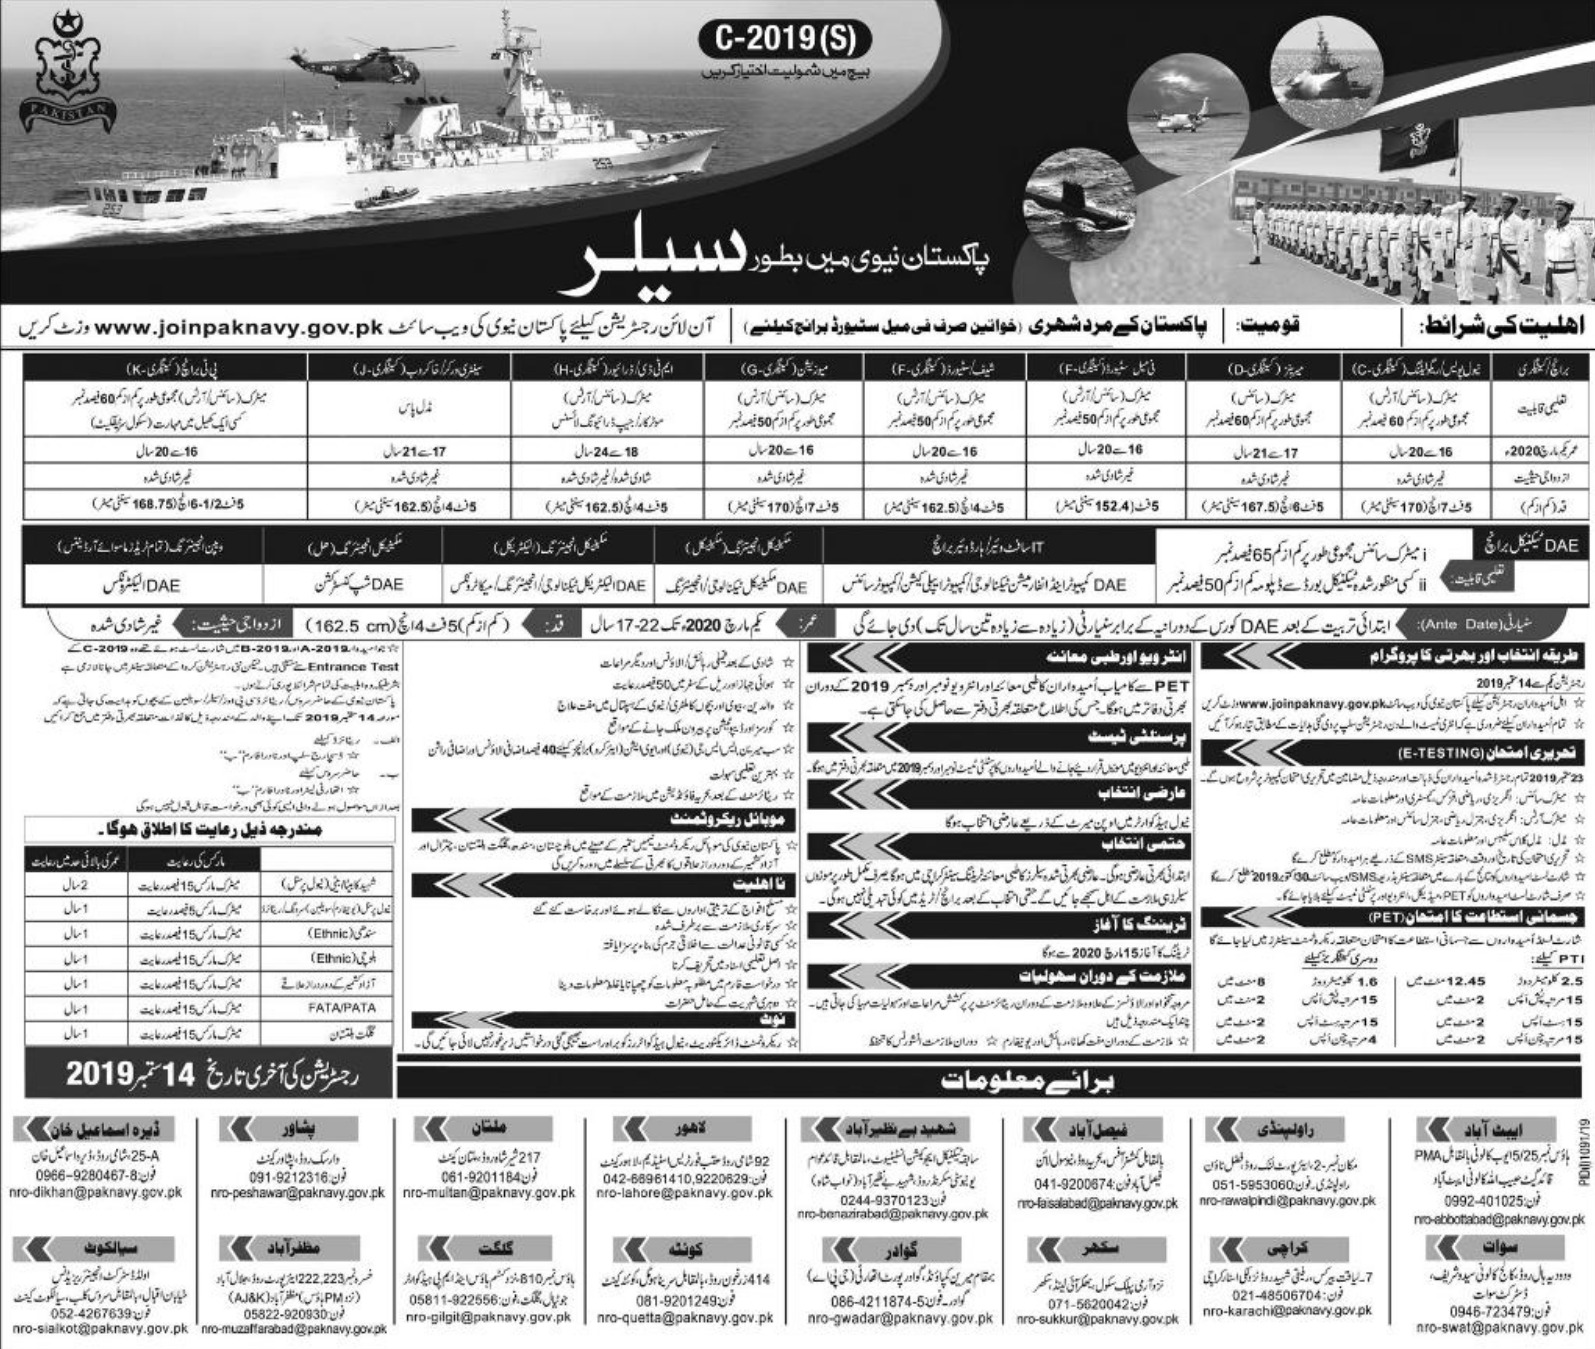 Pakistan Navy Jobs 2019 Join Pak Navy as Sailor 2019